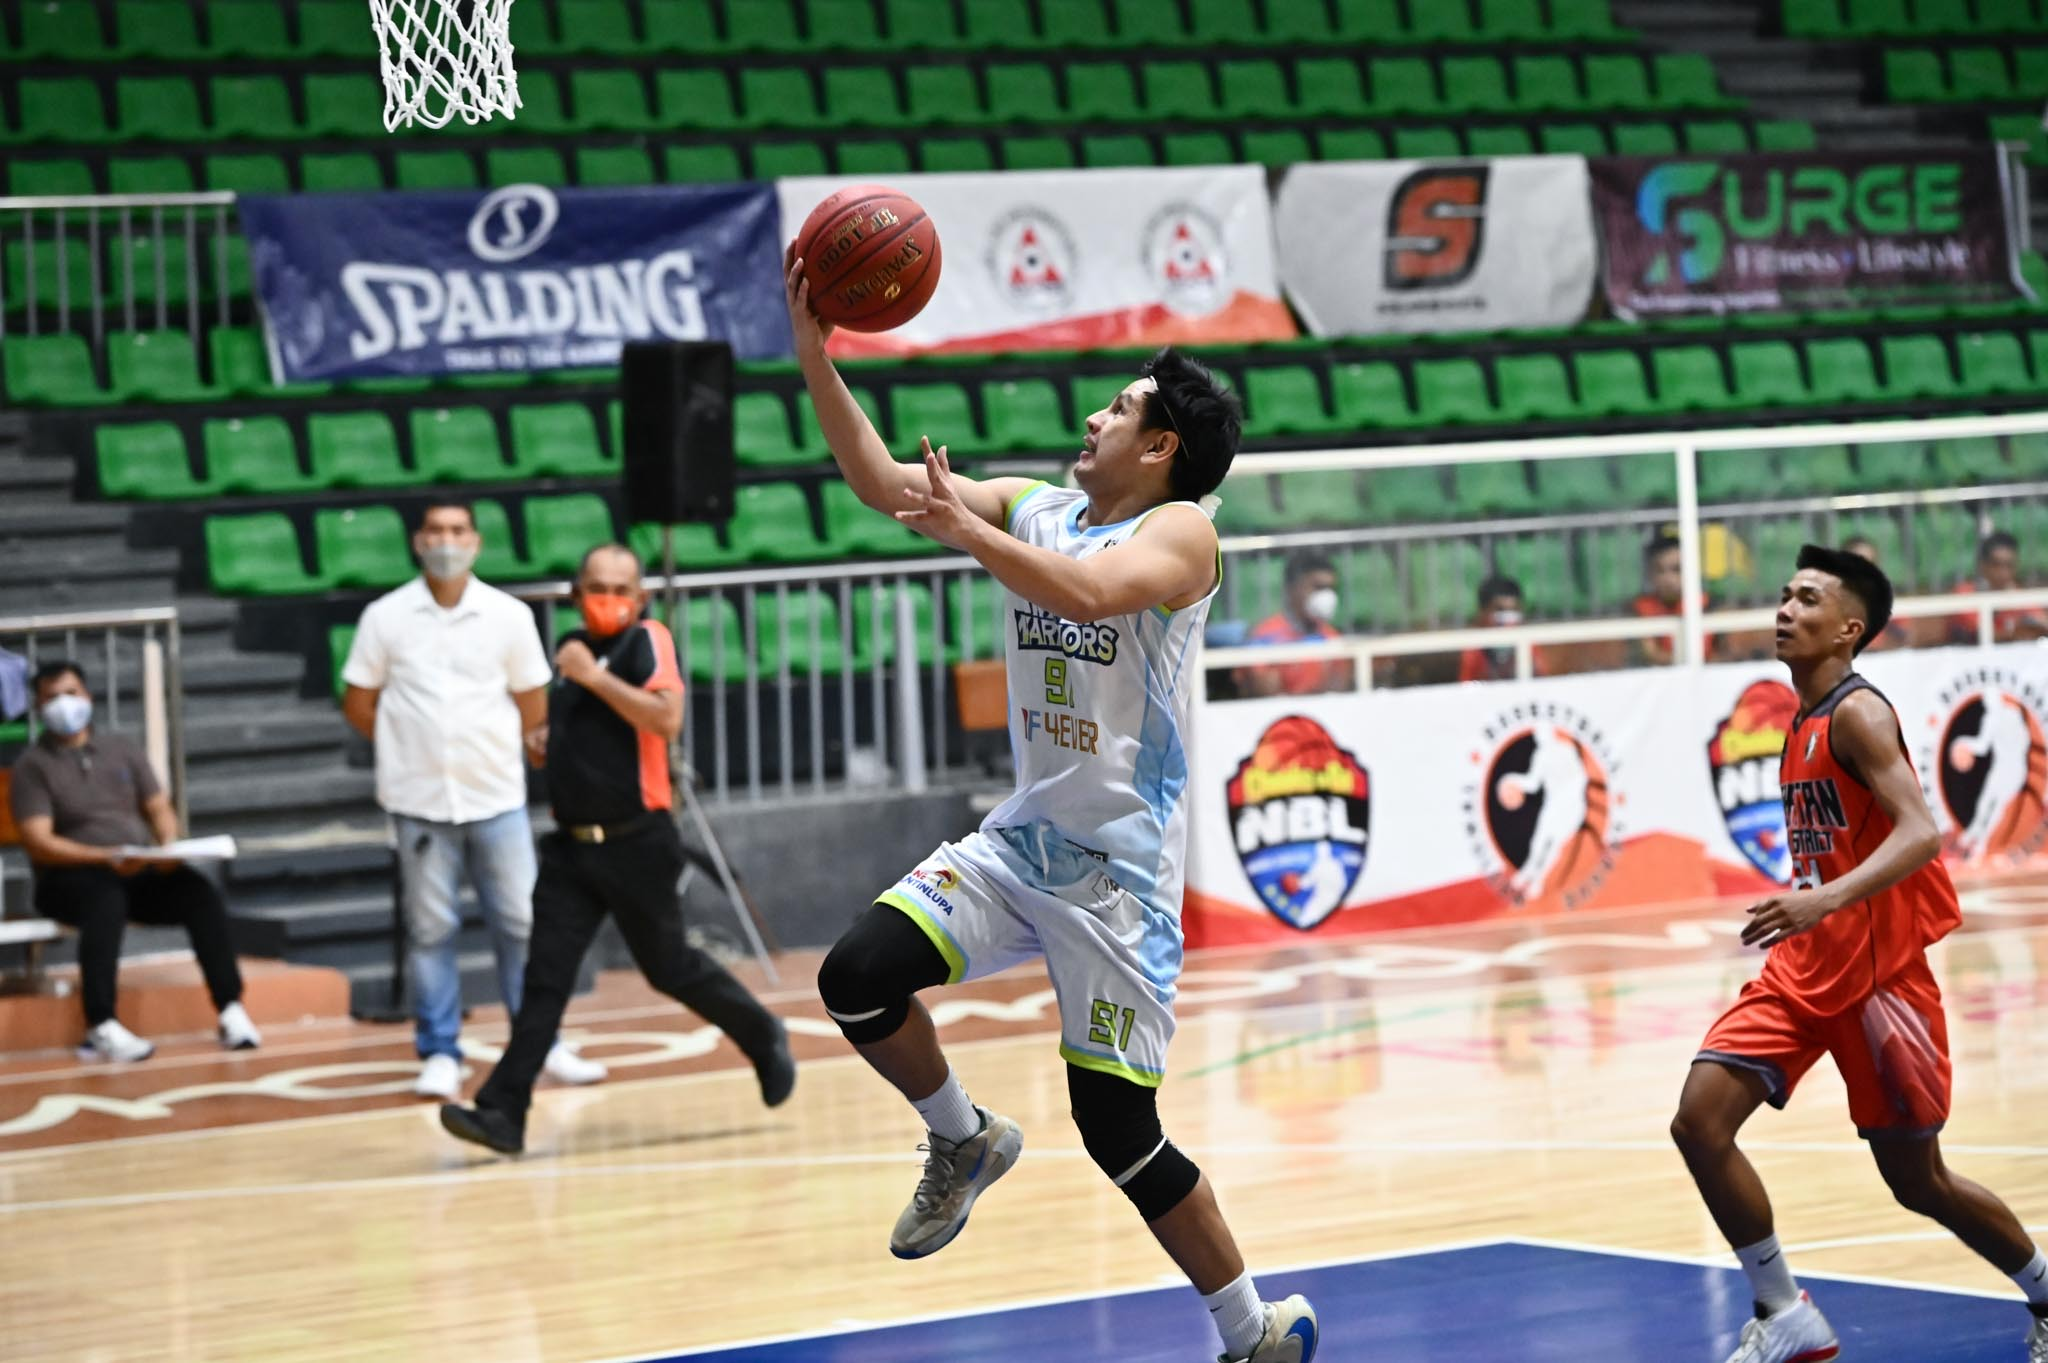 2021-Chooks-to-Go-NBL-Muntinlupa-vs-Quezon-D4-Jed-Mendoza Enguio, Mendoza stamp class, lead Muntinlupa to rousing NBL debut Basketball NBL News  - philippine sports news